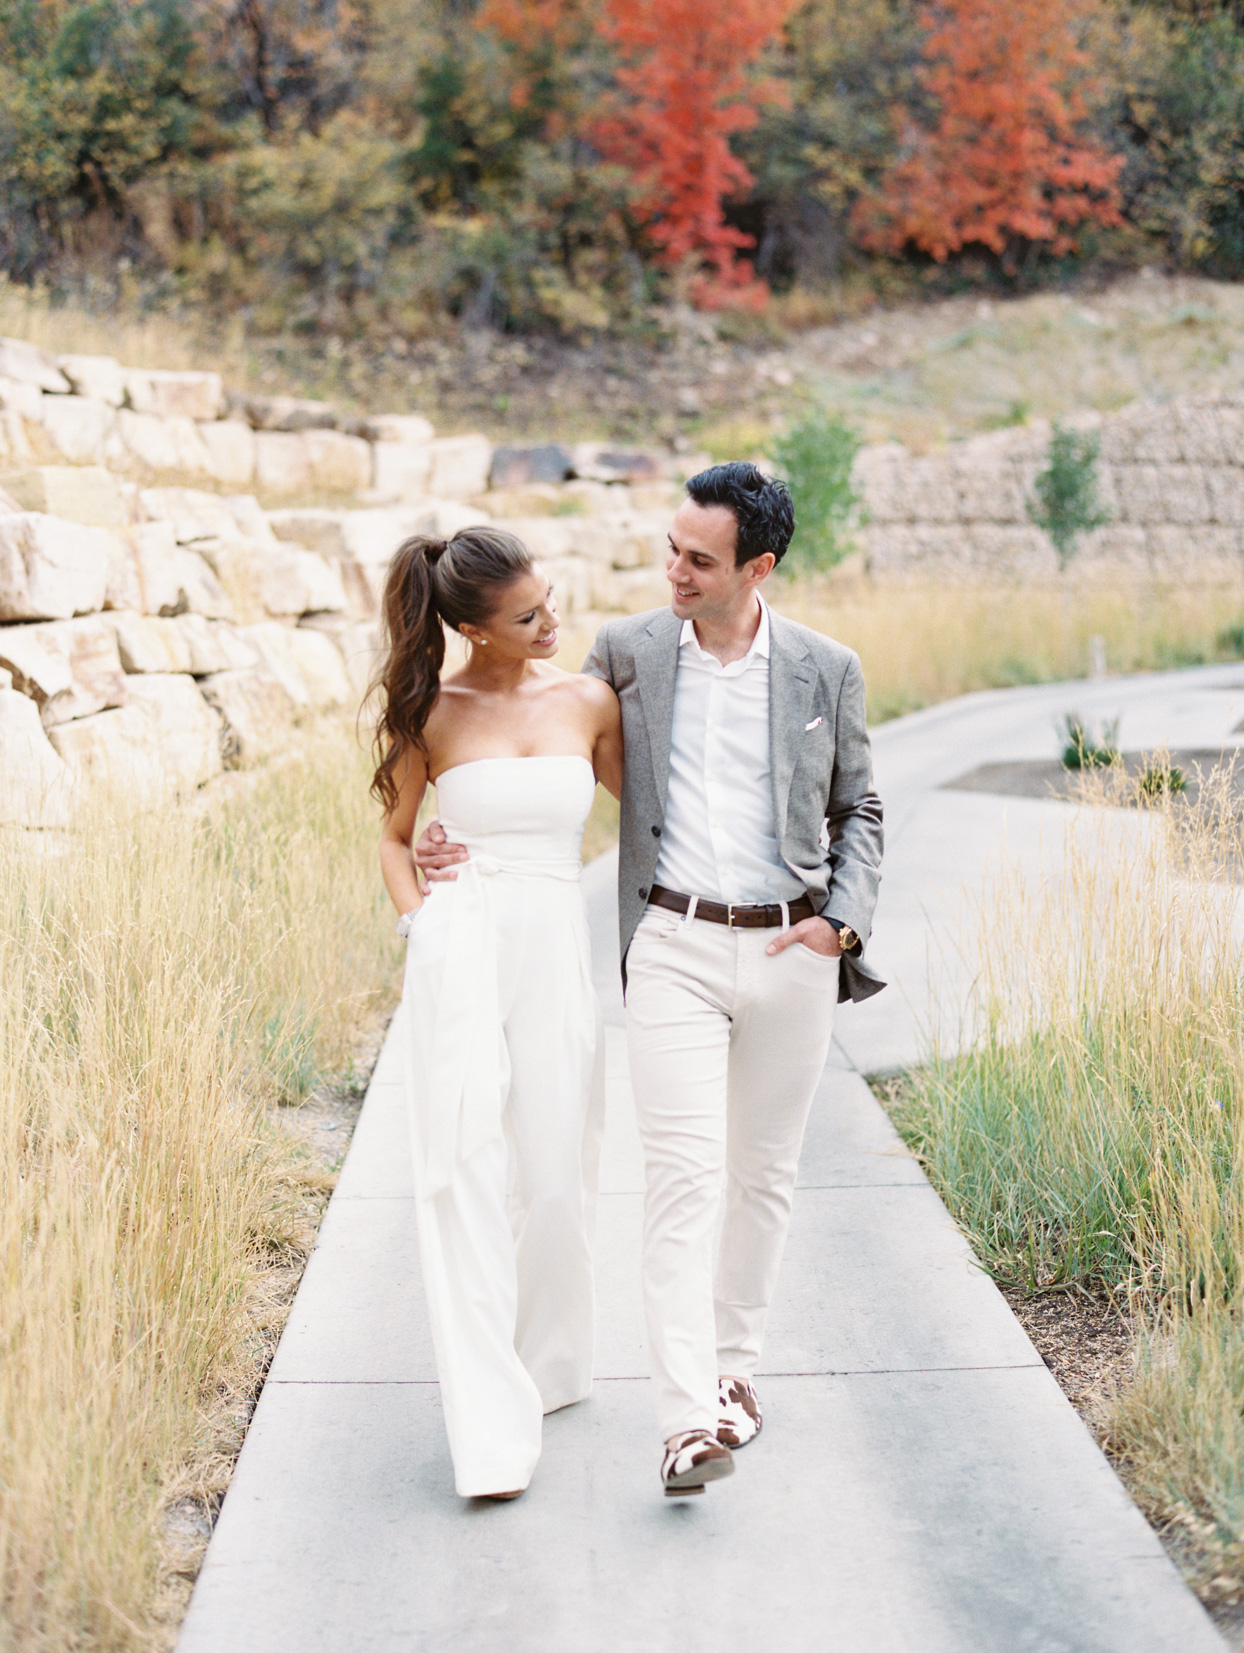 bride and groom smile holding each other while walking on pathway